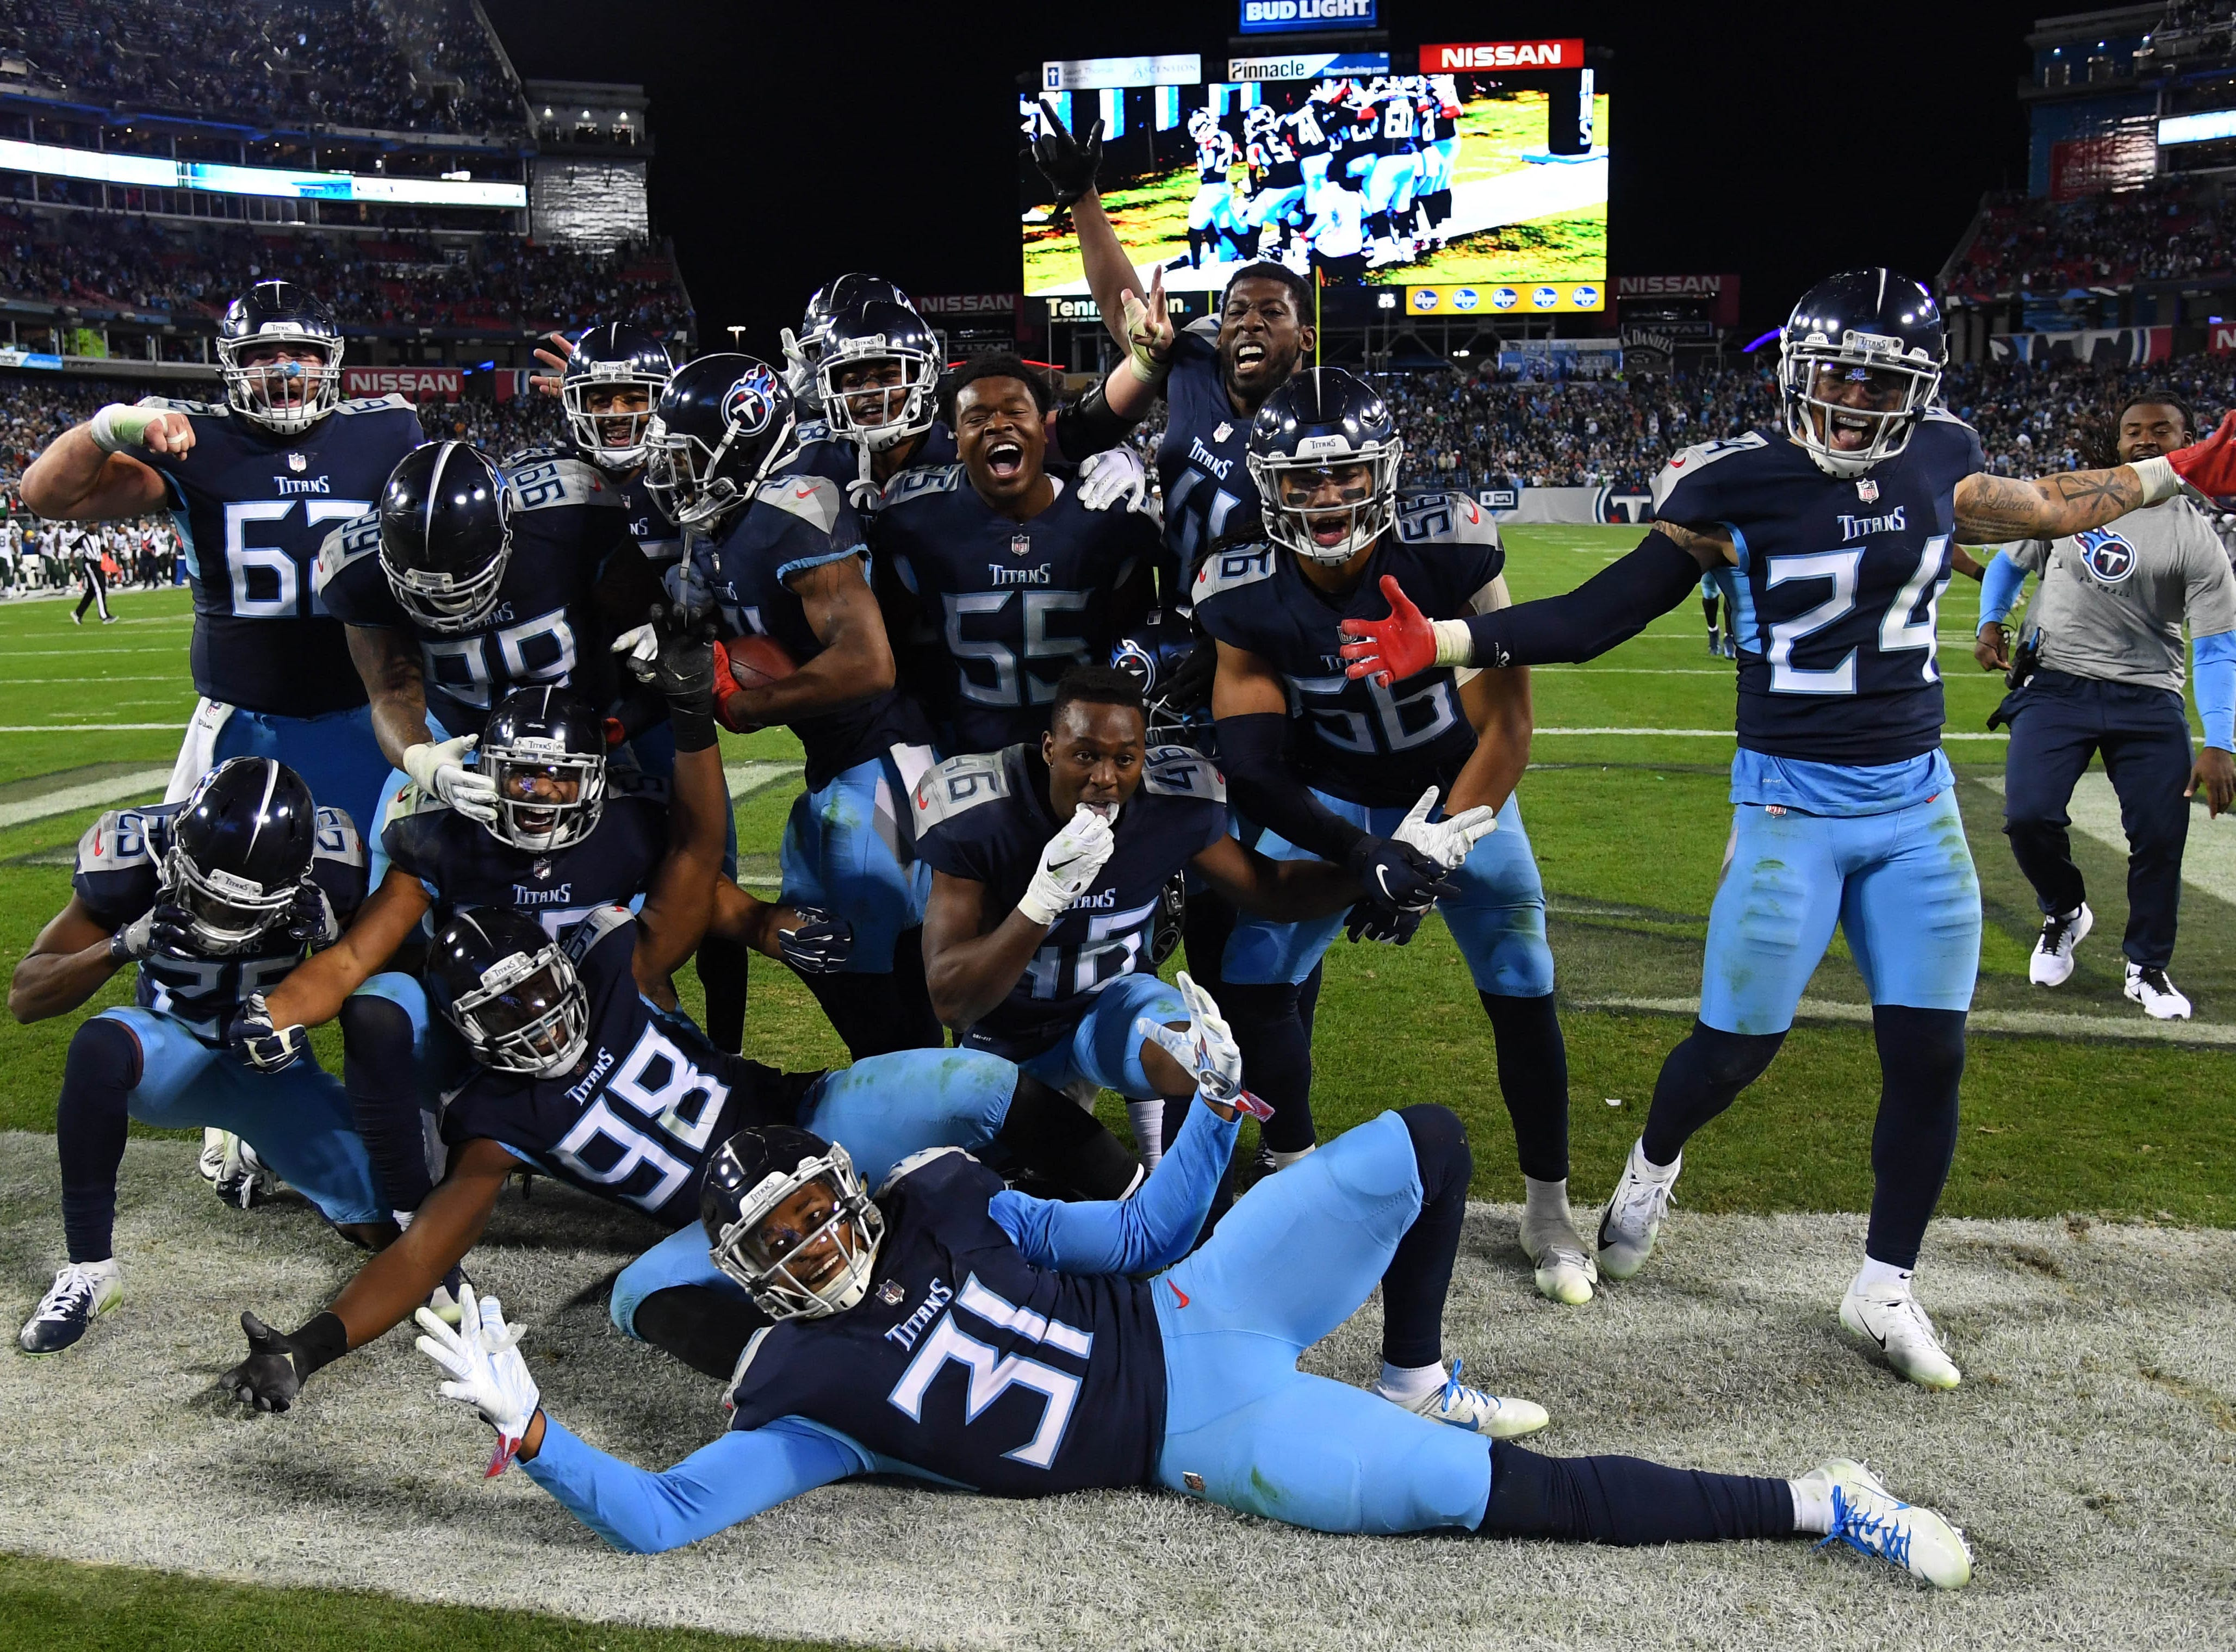 Titans players celebrate after a game-sealing interception by cornerback Malcolm Butler against the Jets.